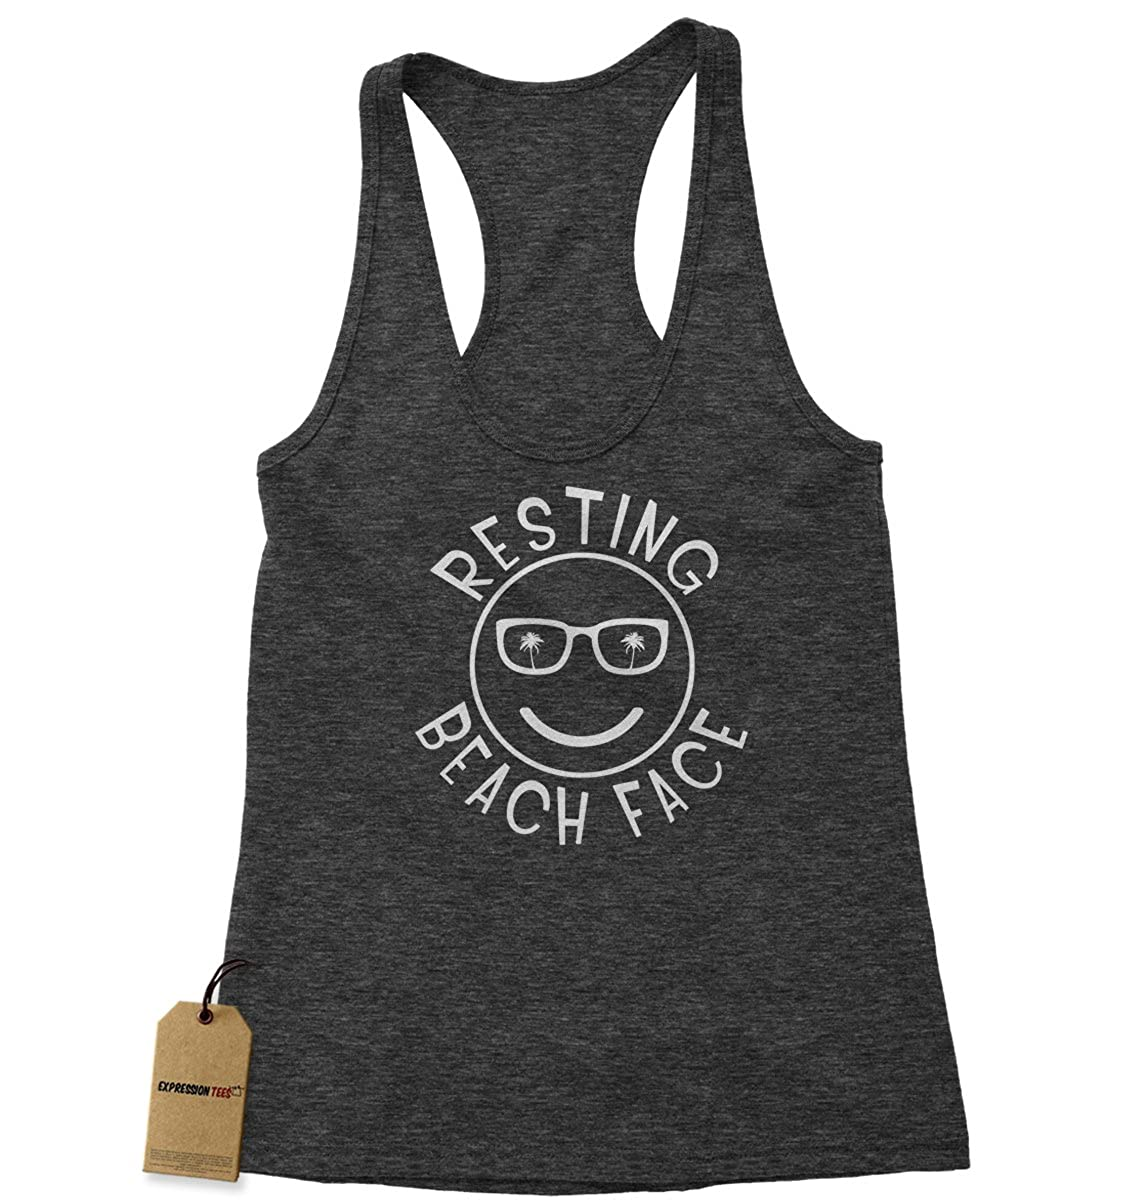 Expression Tees Resting Beach Face Triblend Racerback Tank Top for Women 2011-R